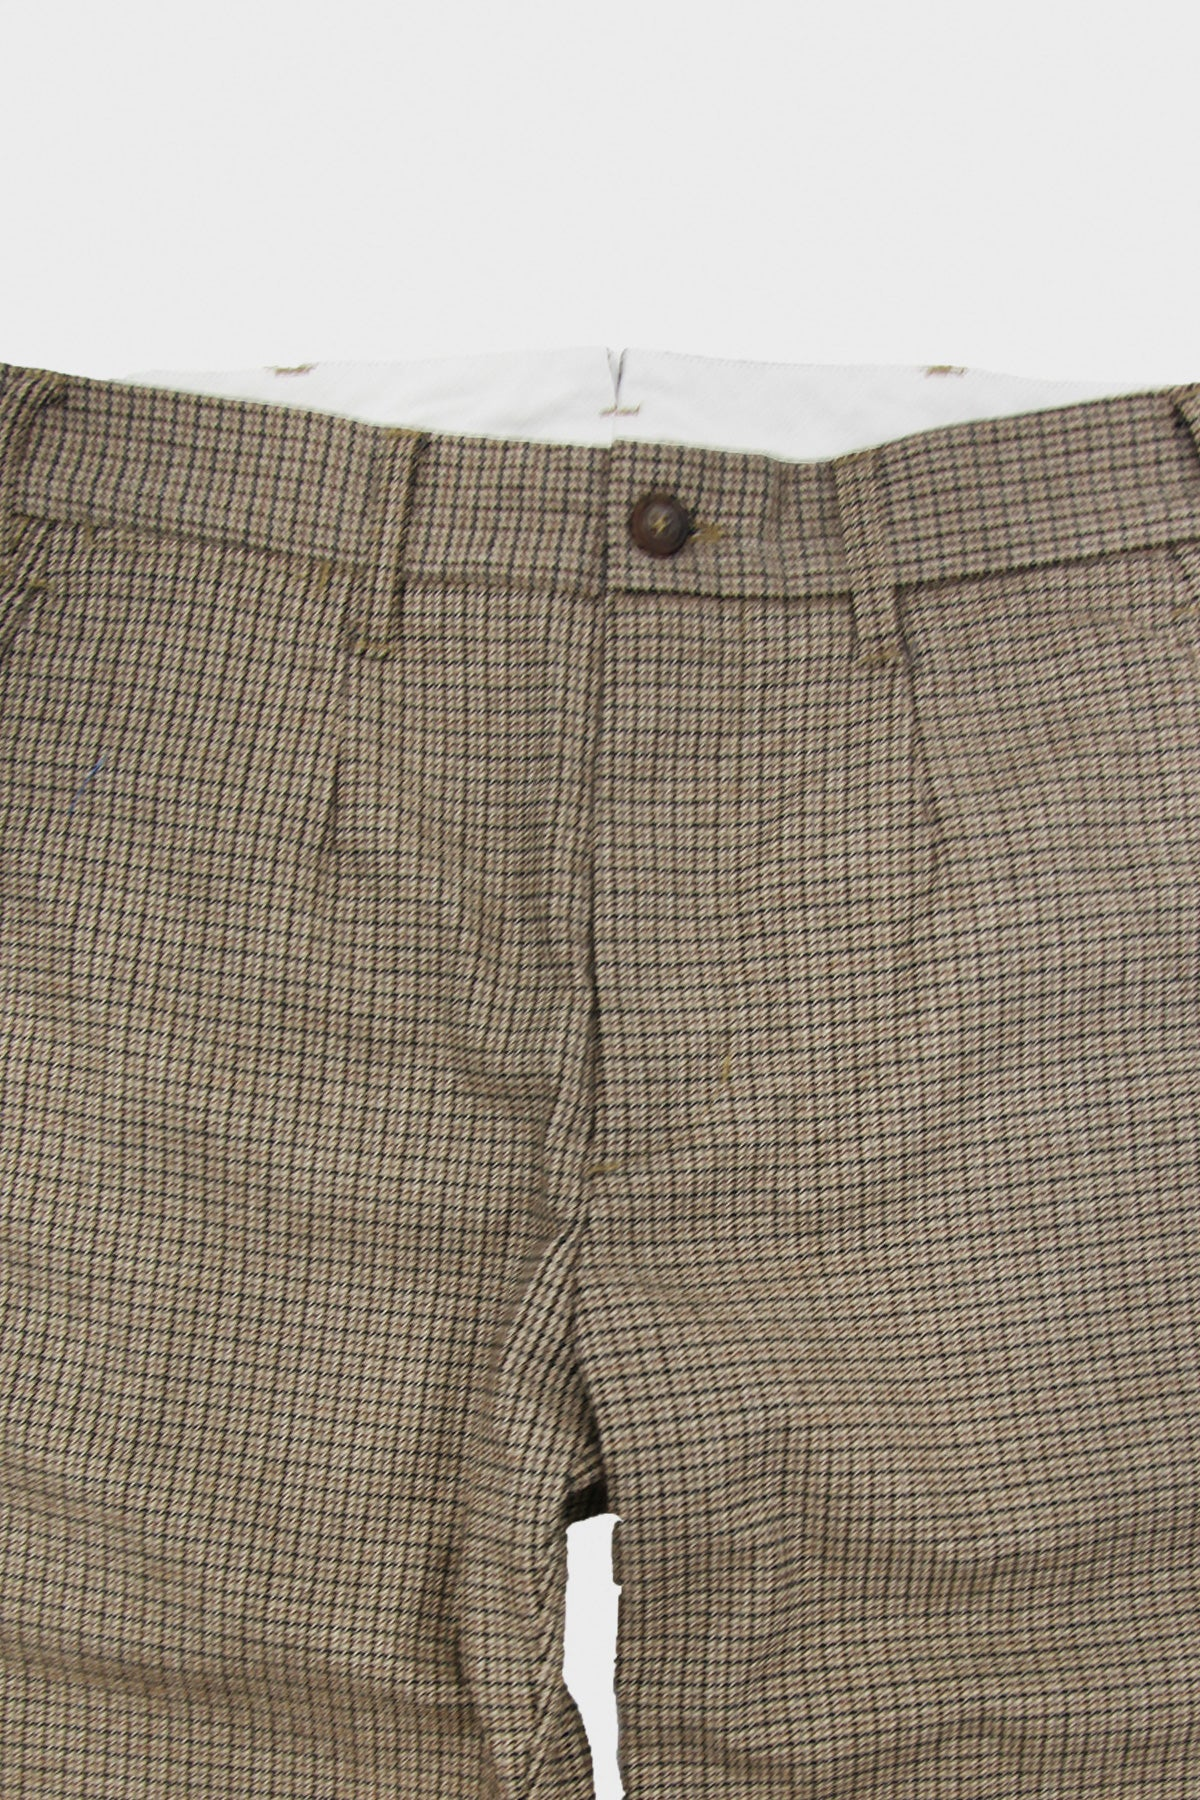 Engineered Garments - Andover Pant - Brown Wool Poly Gunclub Check - Canoe Club